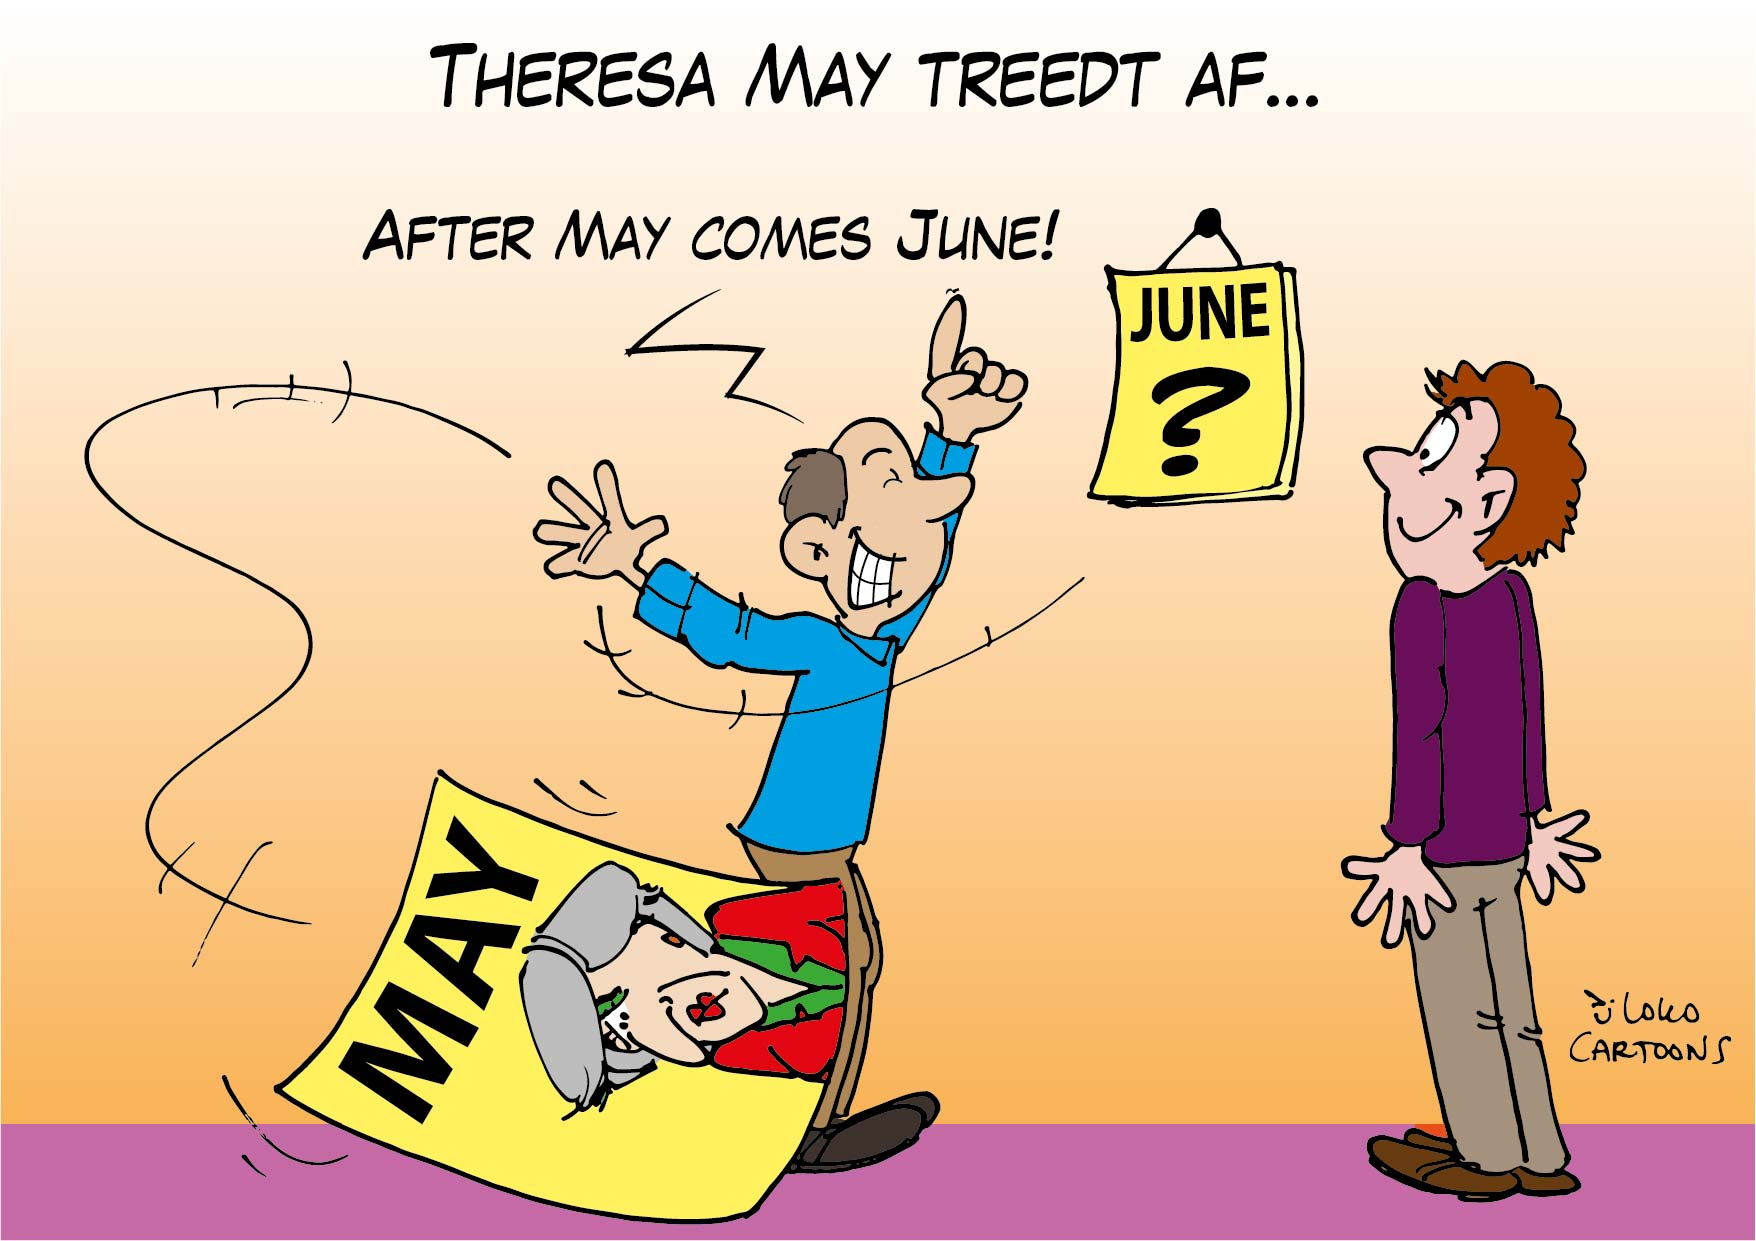 Theresa May treedt af…